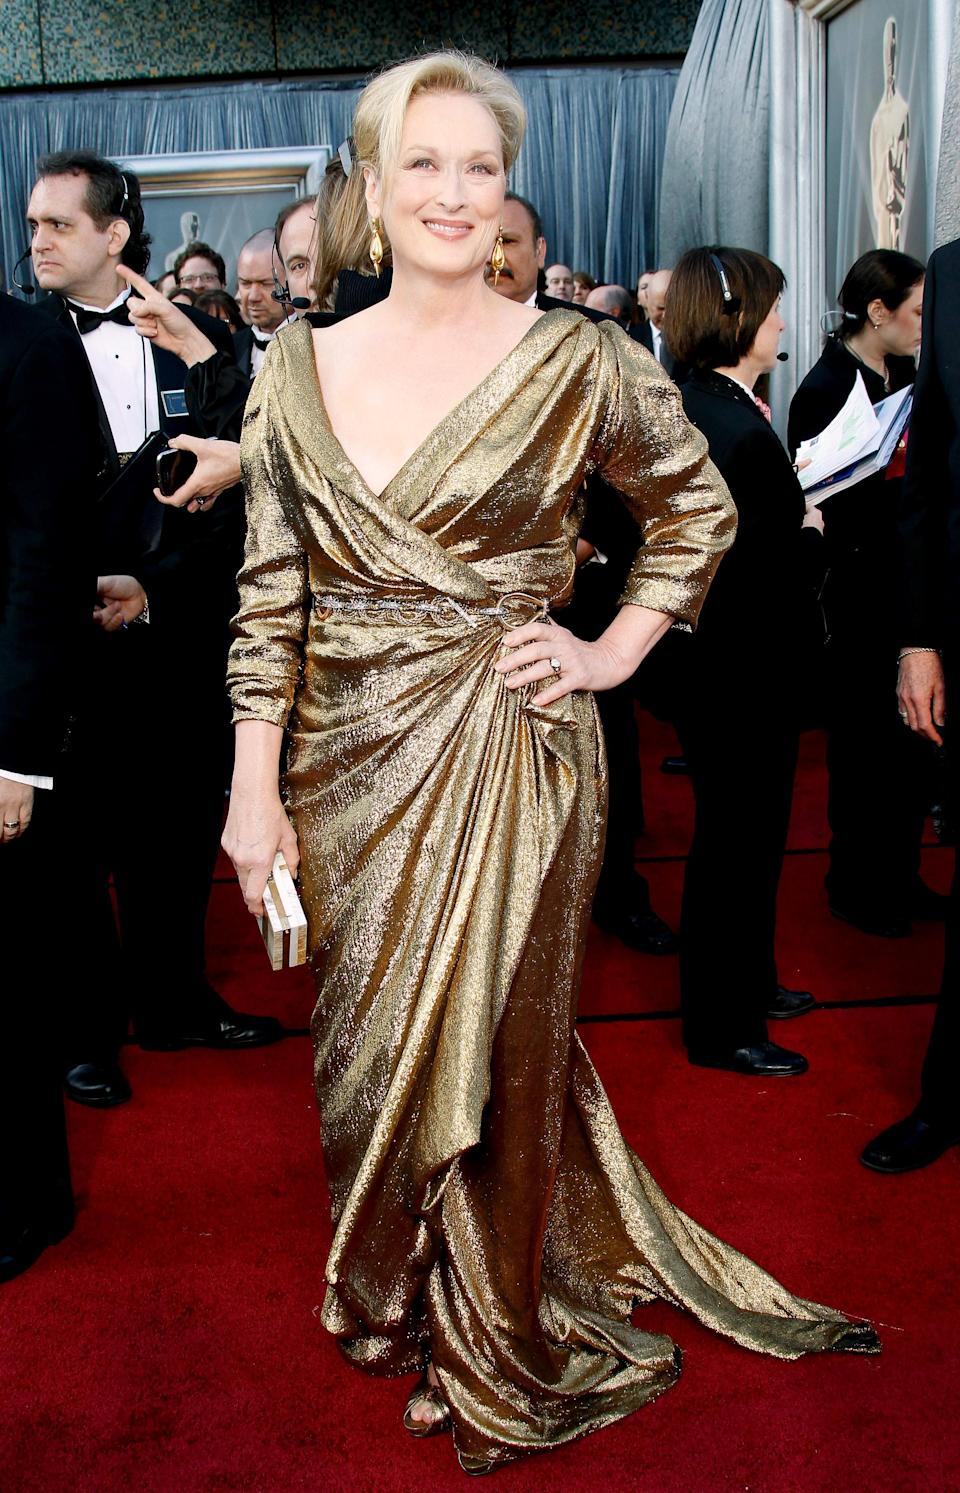 Meryl arrived at the 2012 Oscars wrapped in a gold, metallic Lanvin gown. The actress left the ceremony with a best actress award for 'Iron Lady'.